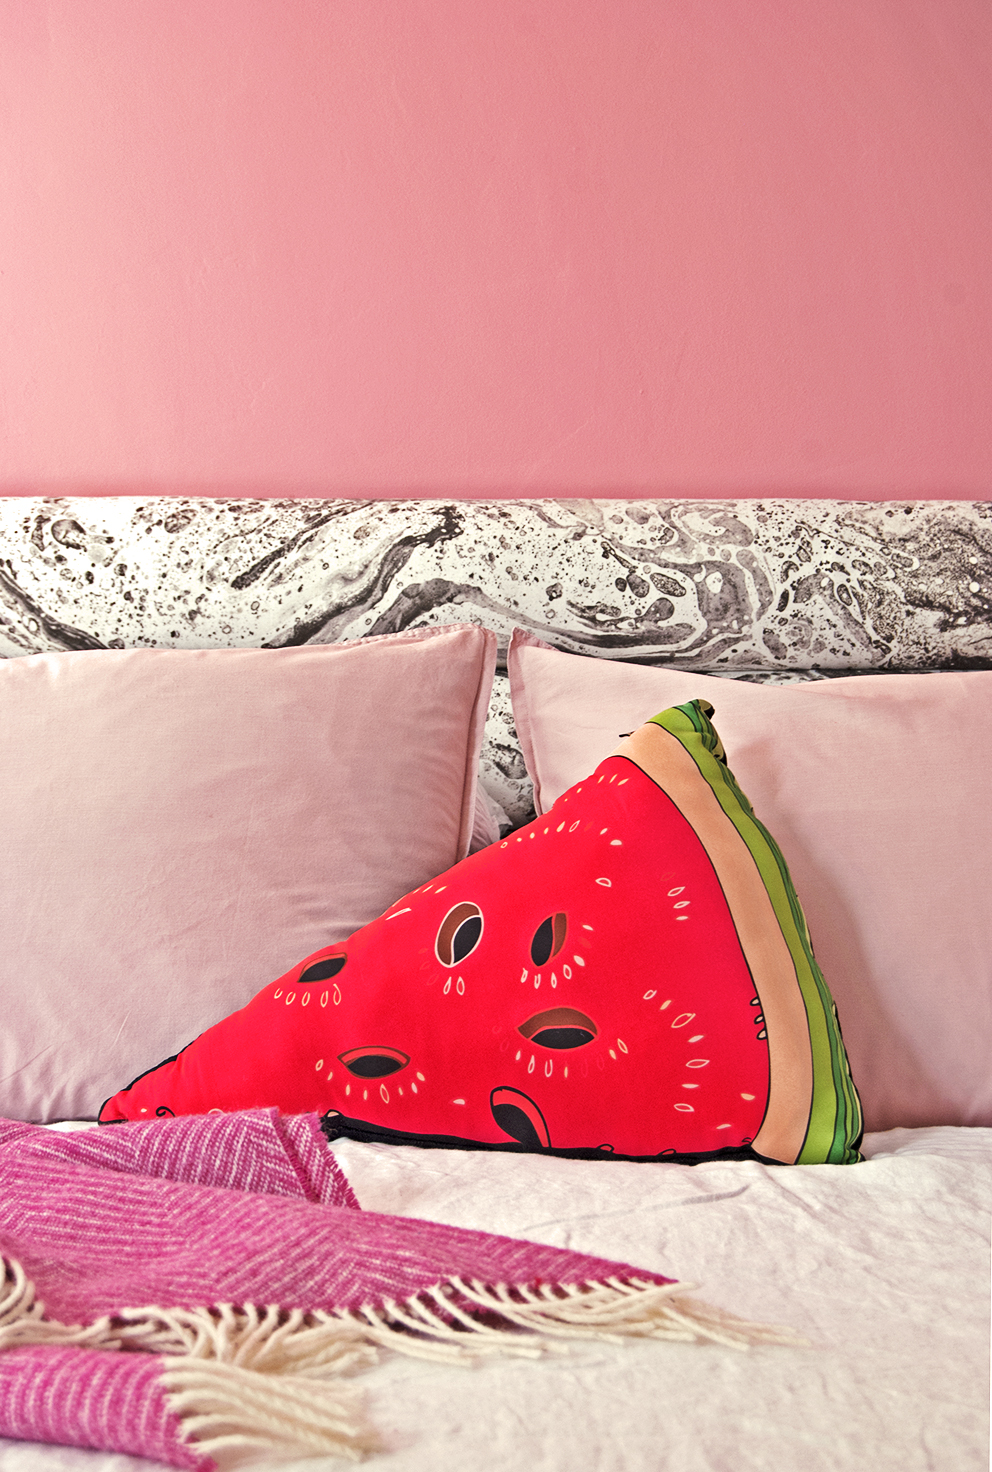 Amara Shoppable Home Inspiration Pages - French For Pineapple Blog - pink walls and pink pillowcases with watermelon cushion and marbled headboard